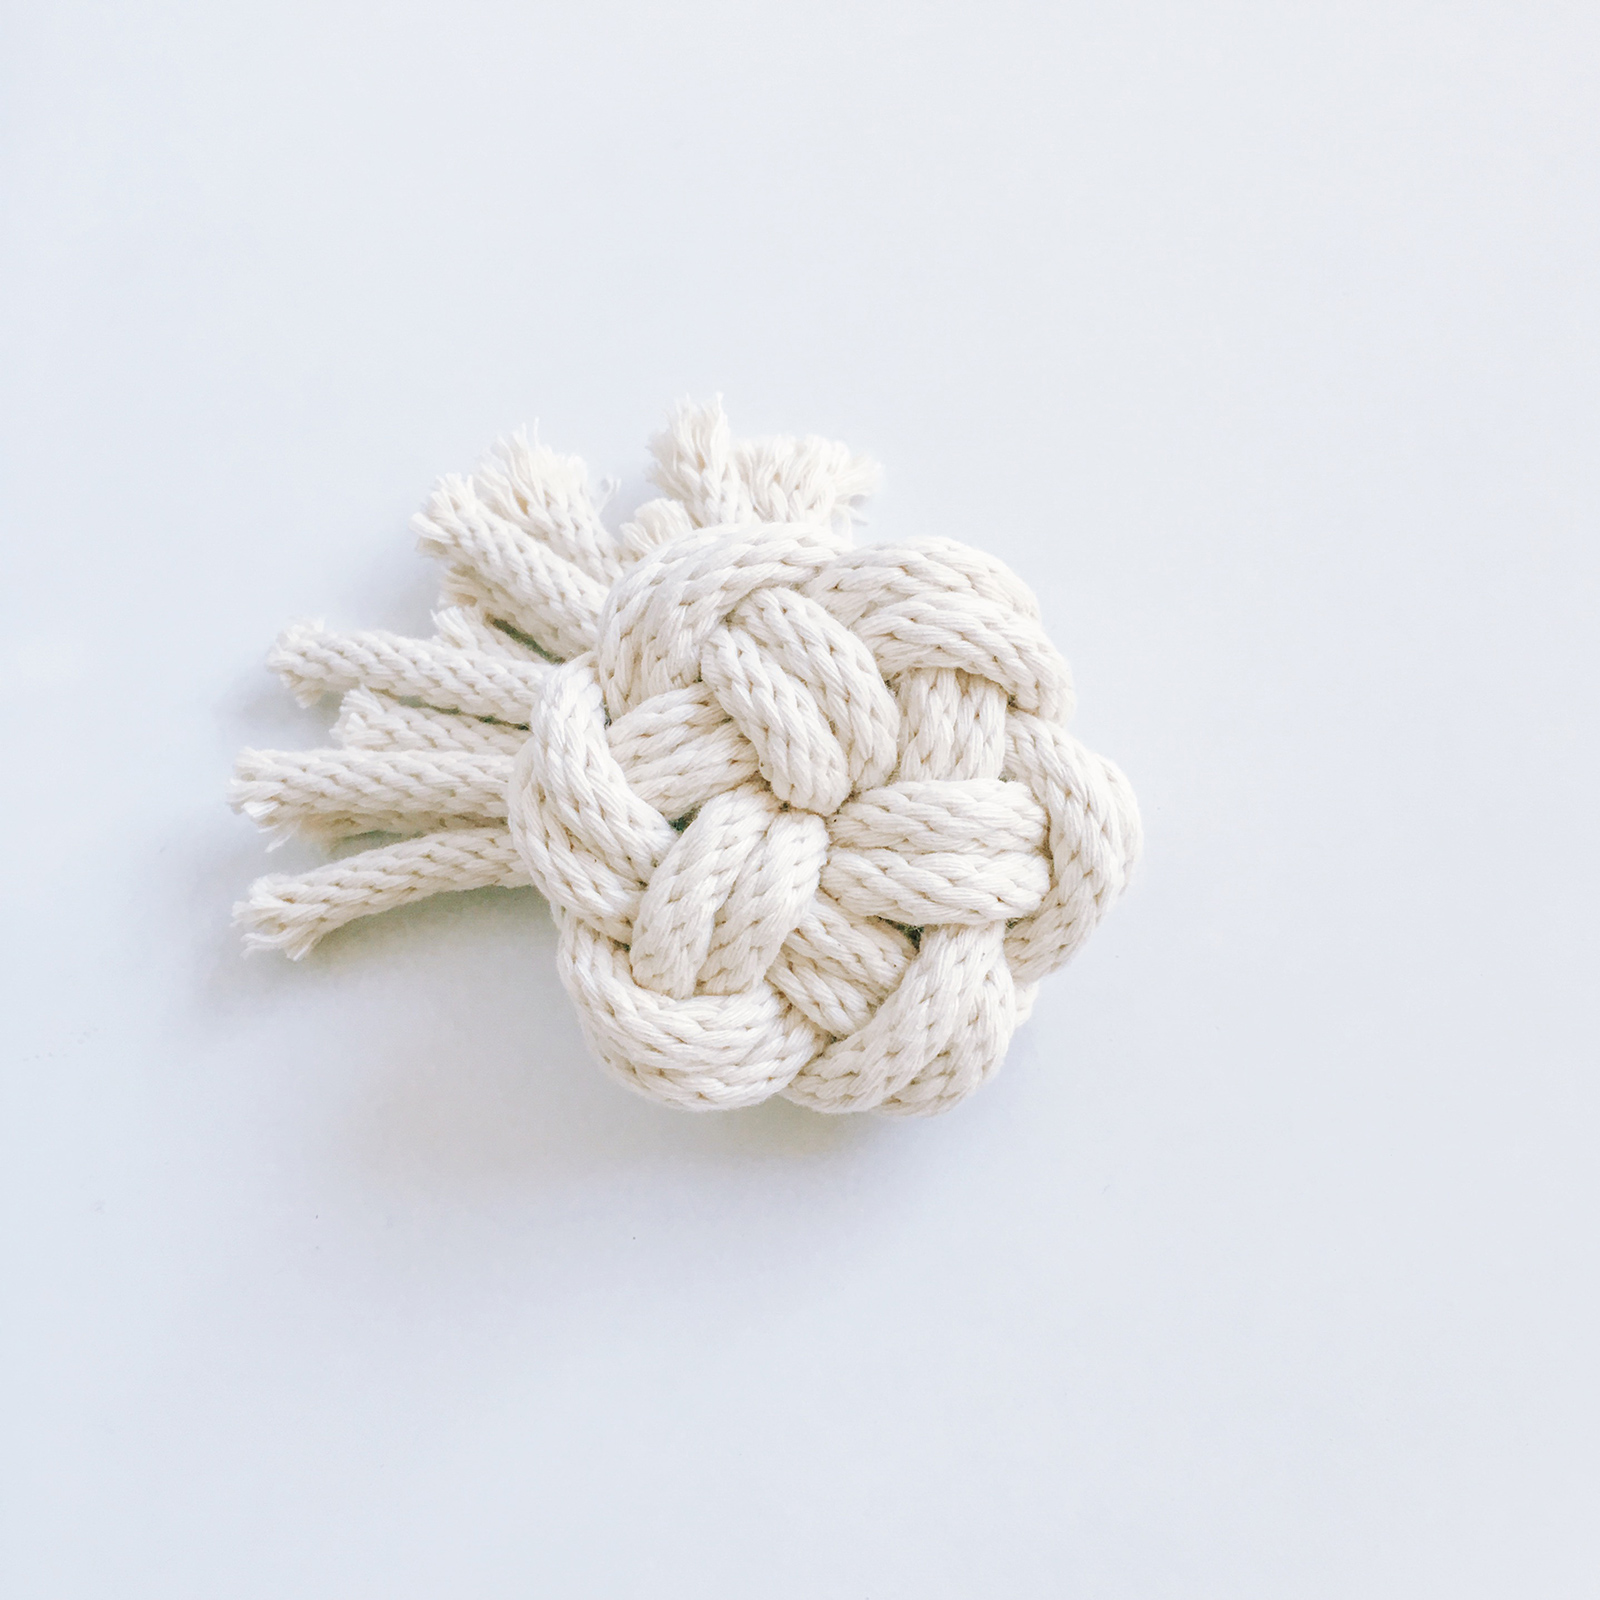 The Year of Knots by Windy Chien